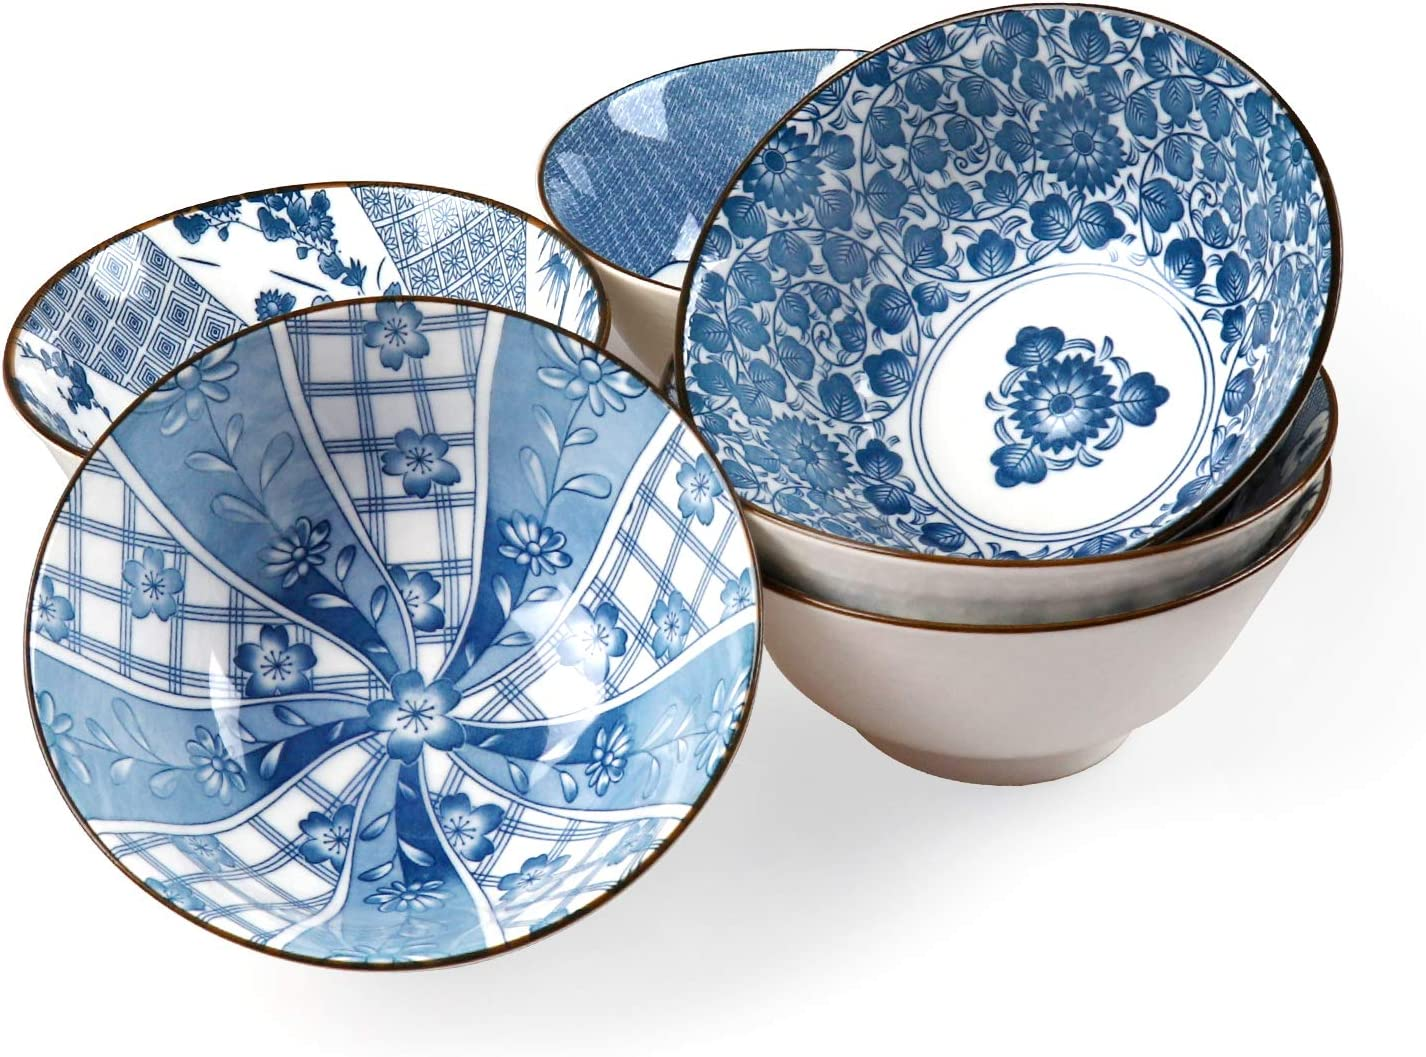 Ceramic Bowl for Soup, Rice, Salad, Assorted Patterns 6 inch Bowls, Blue and White, Bowl set of 6